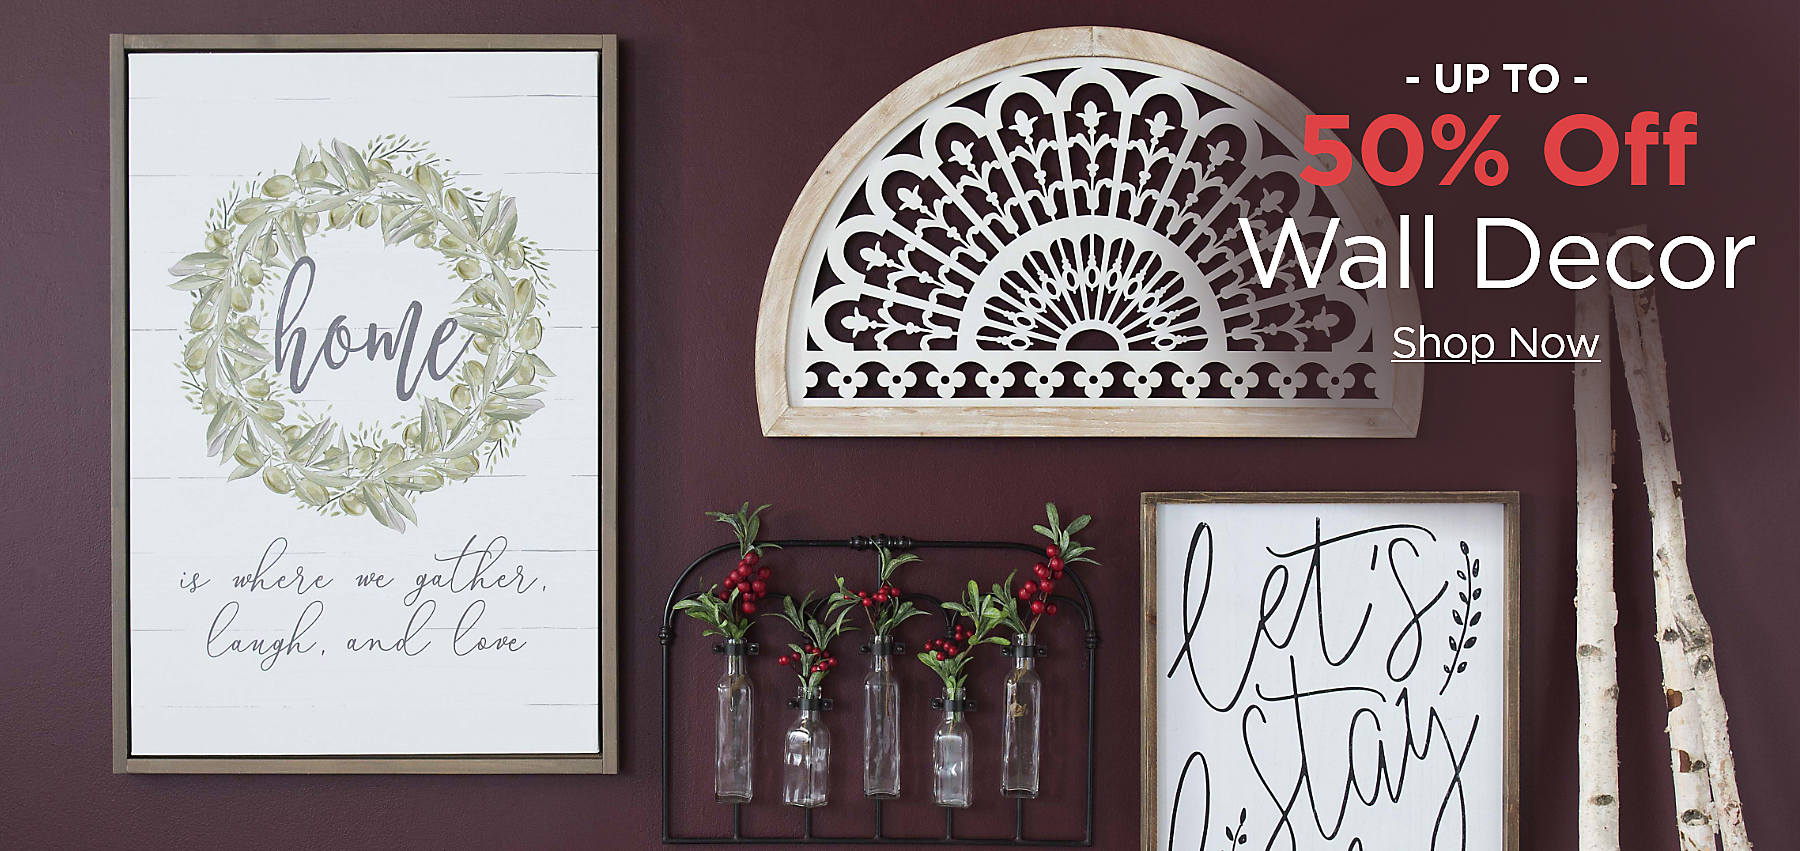 Up to 50% off Wall Decor Shop Now